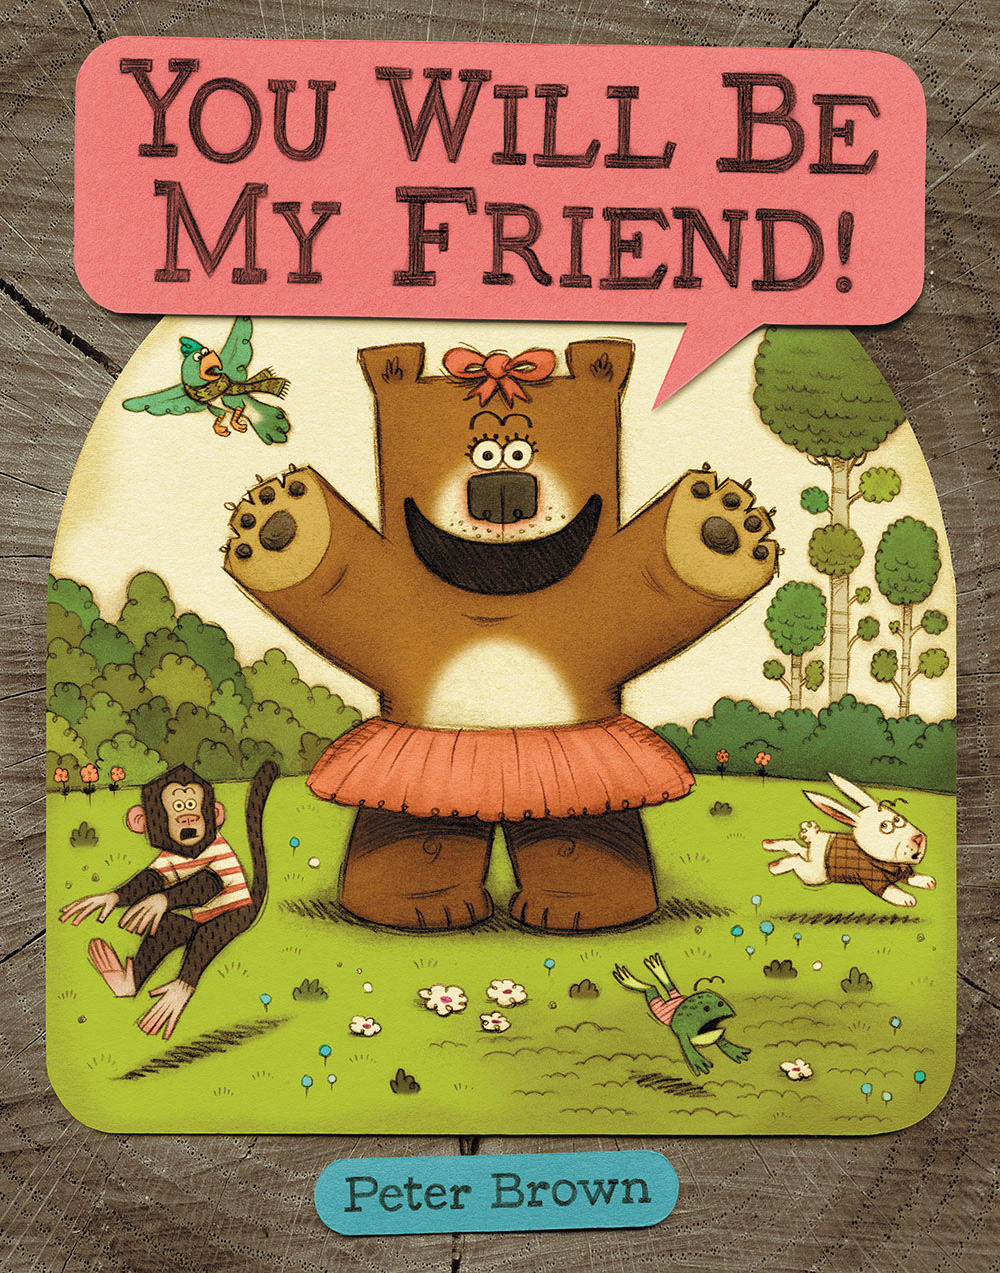 Brown, Peter 2011_09 - YOU WILL BE MY FRIEND - PB - RLM PR.jpg